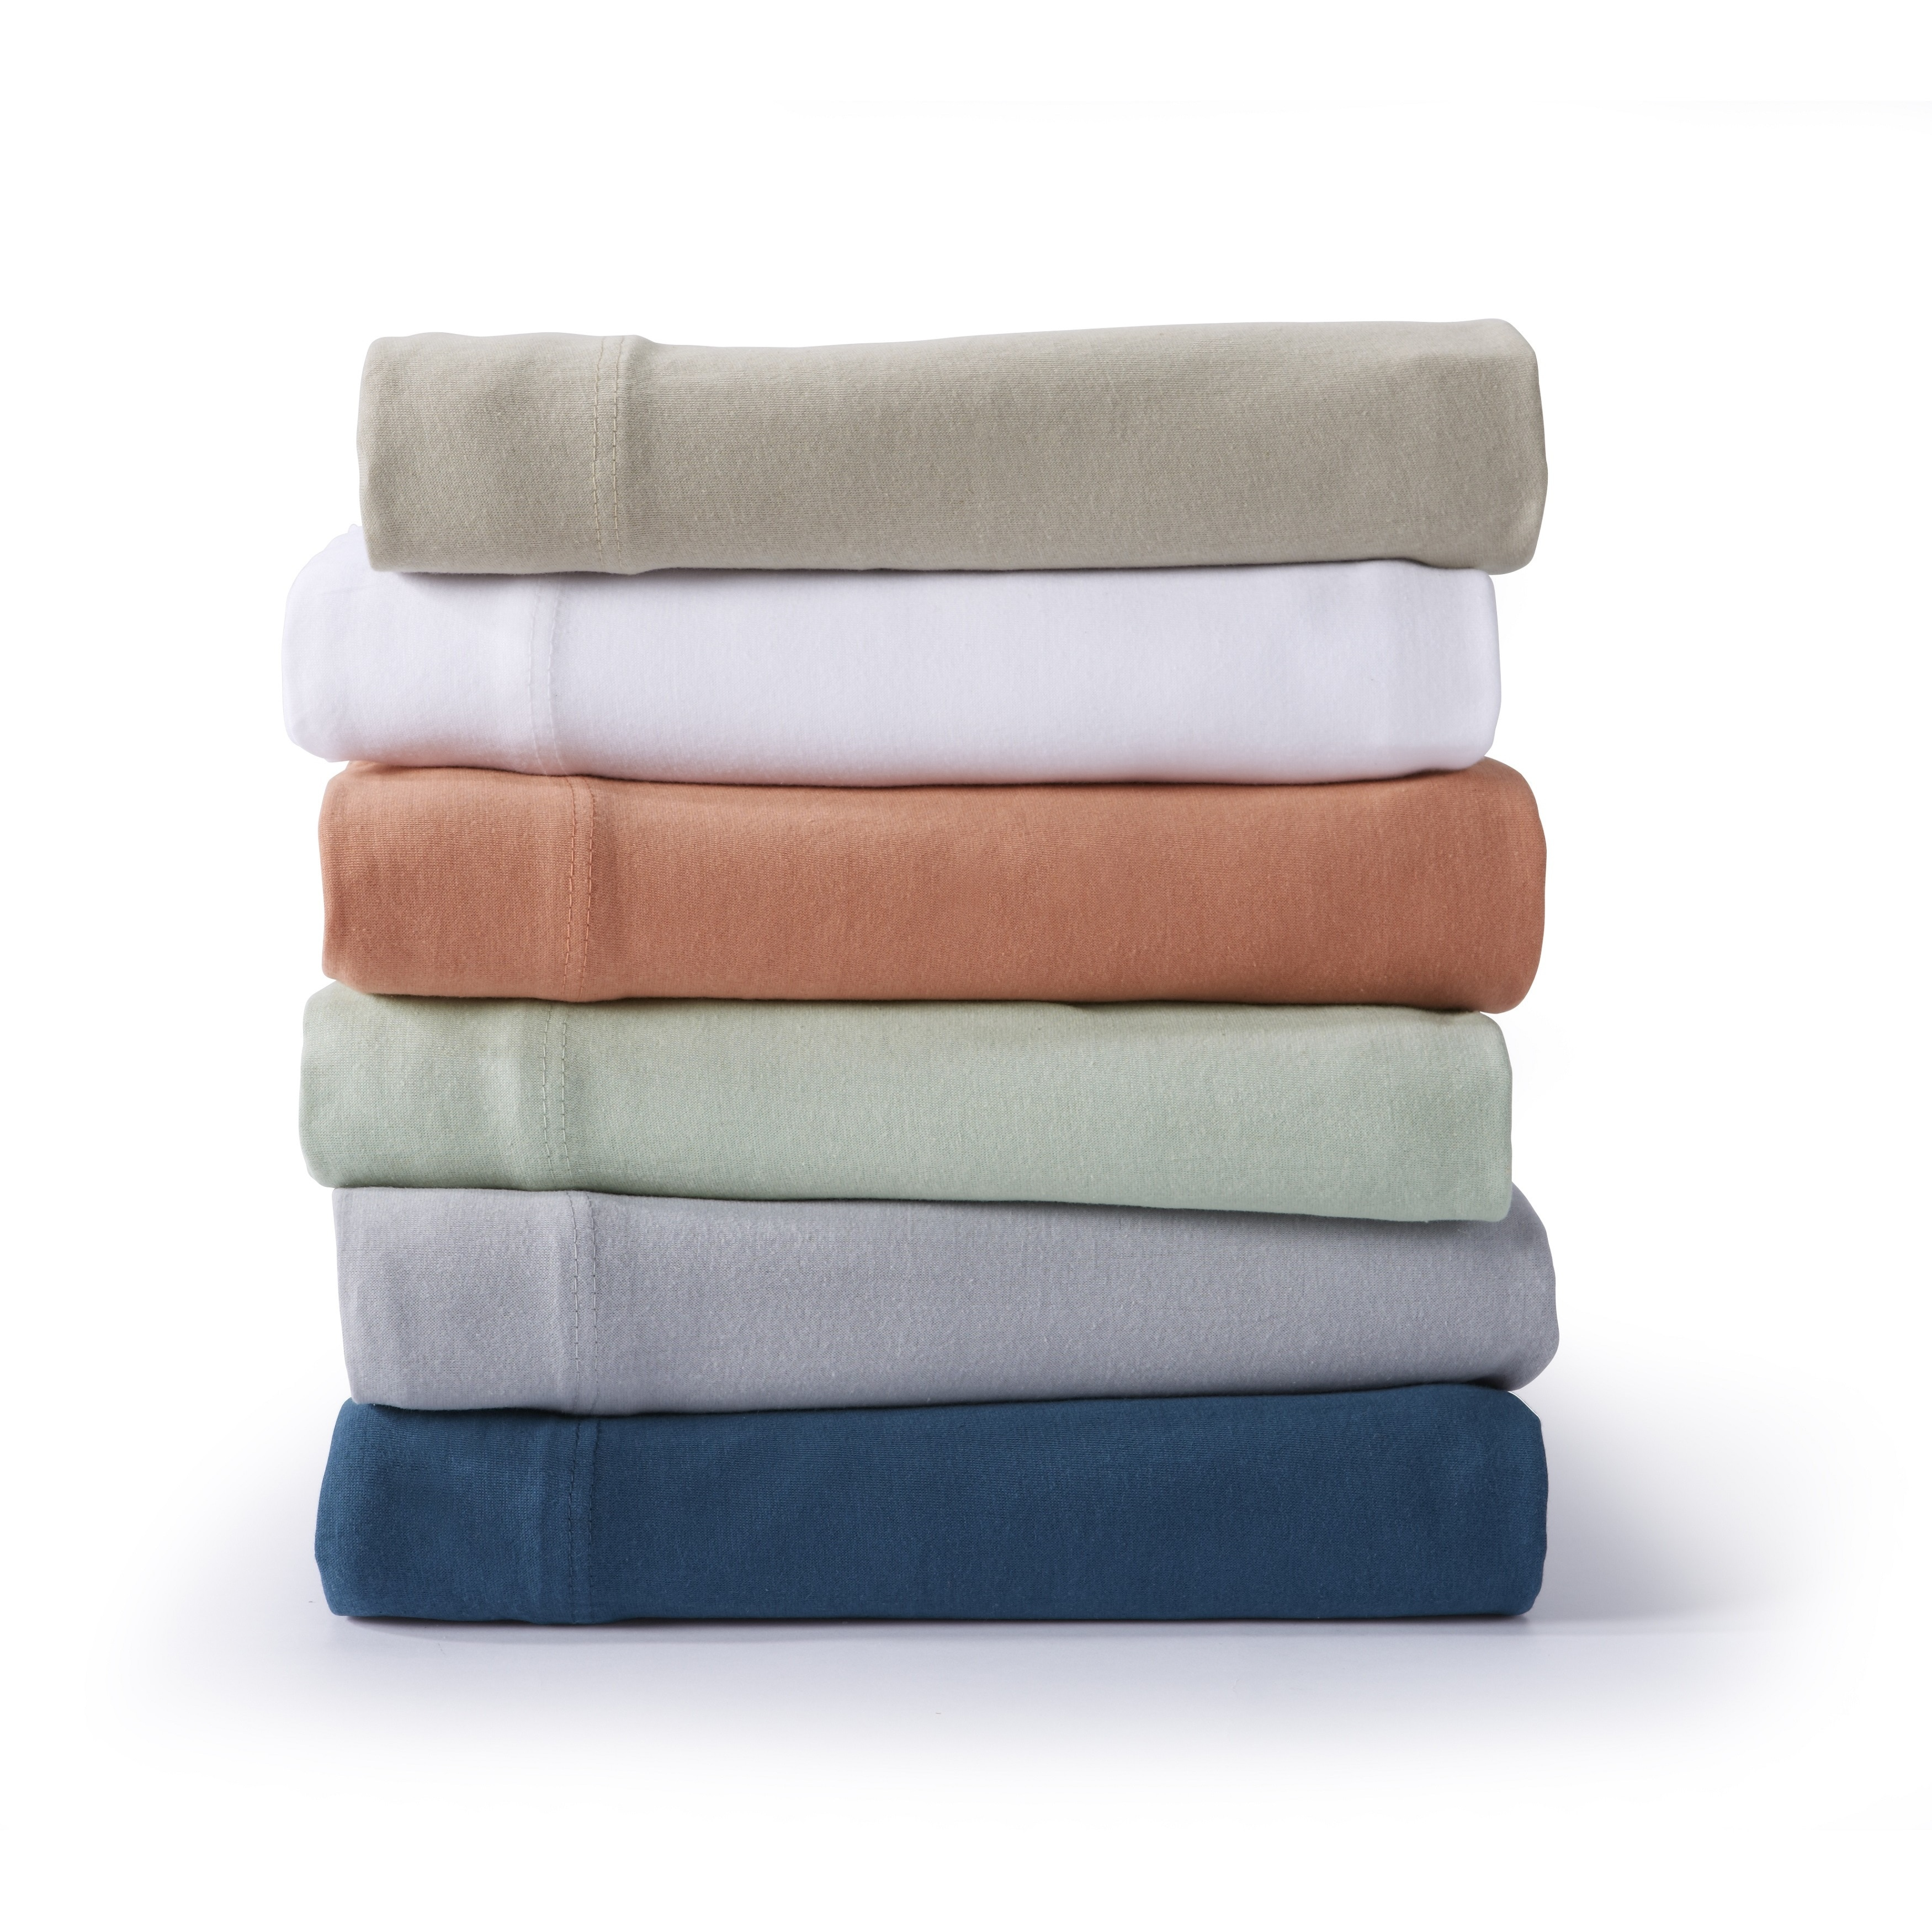 Home Fashion Designs Zimmer Collection Extra Soft Cotton Jersey Knit ...